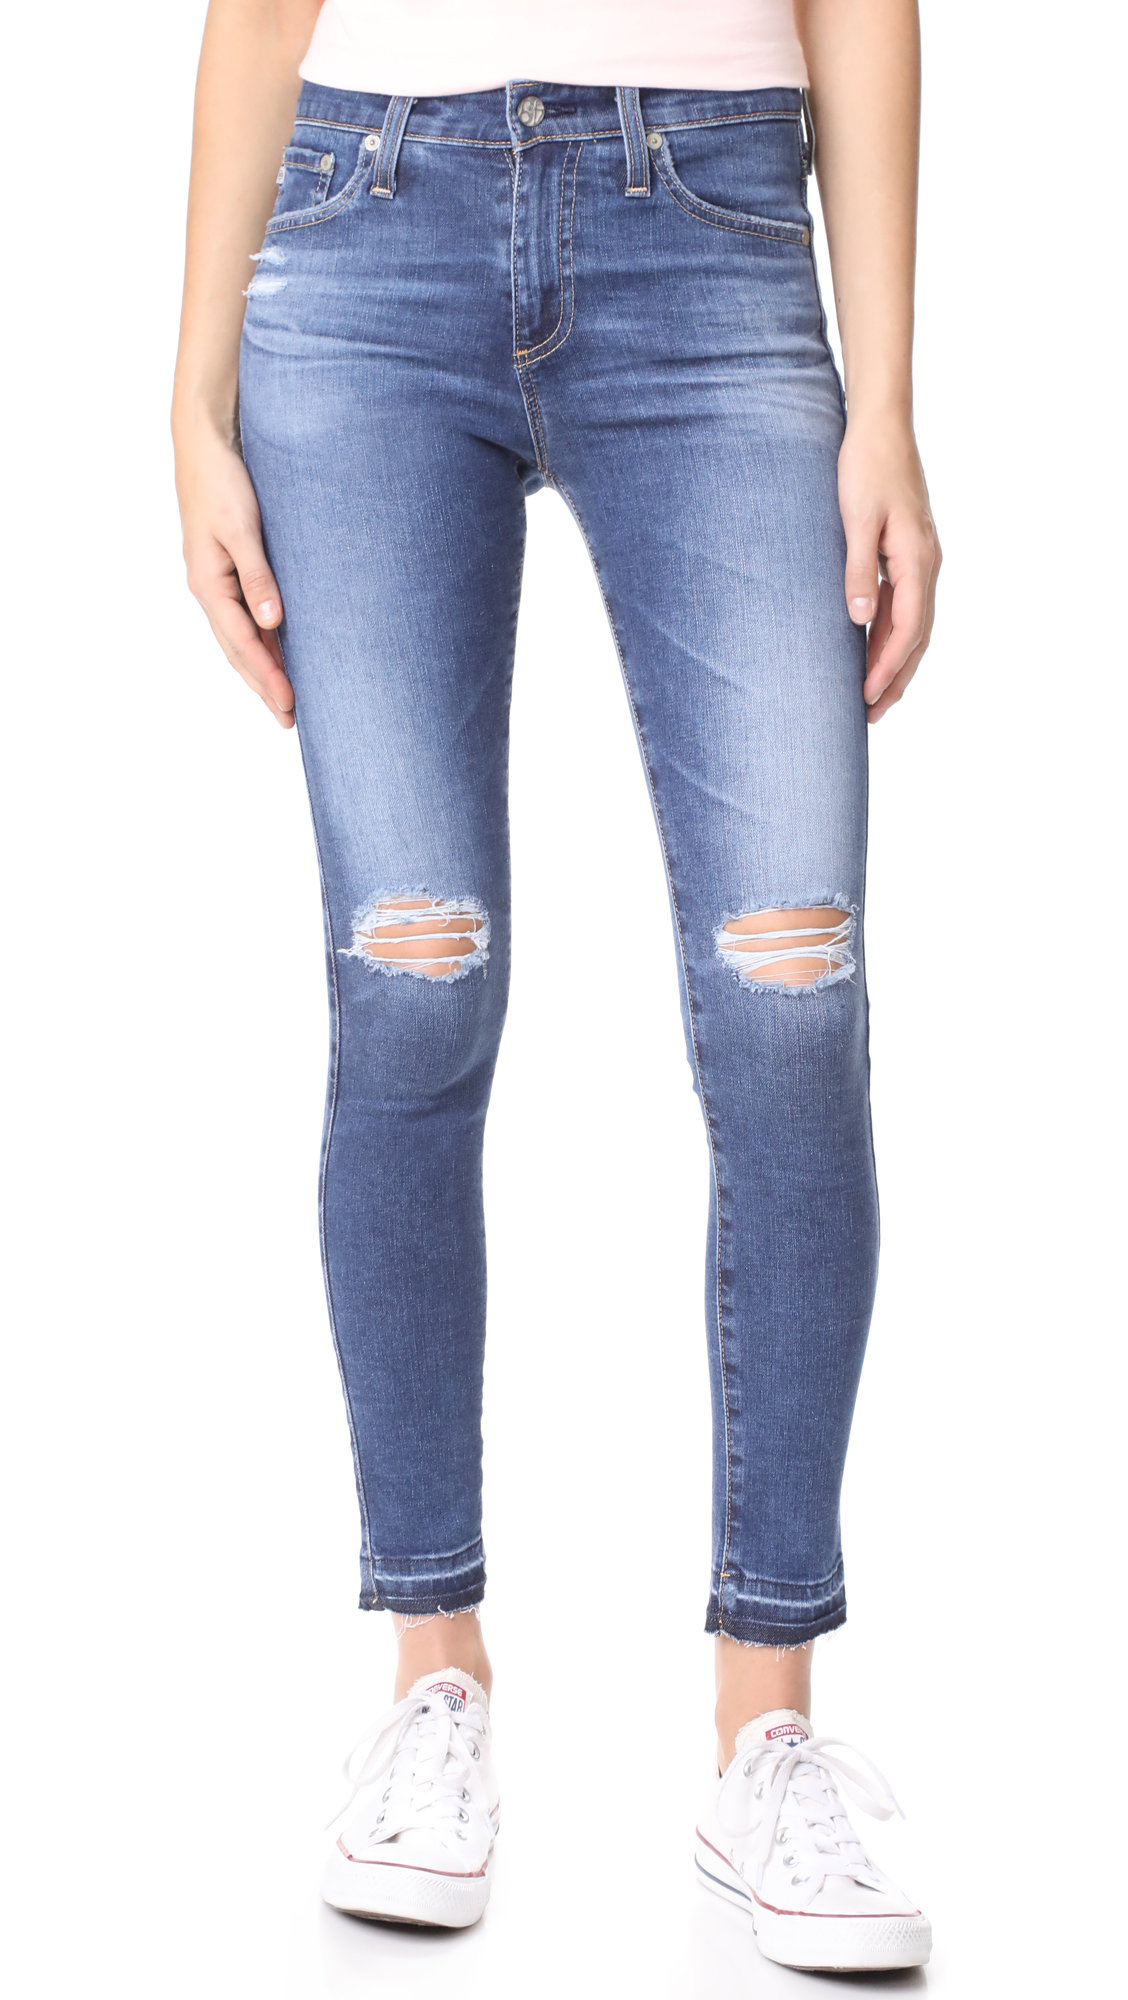 AG The Farrah Ankle Skinny Jeans - 13 Years Daybreak Destroyed